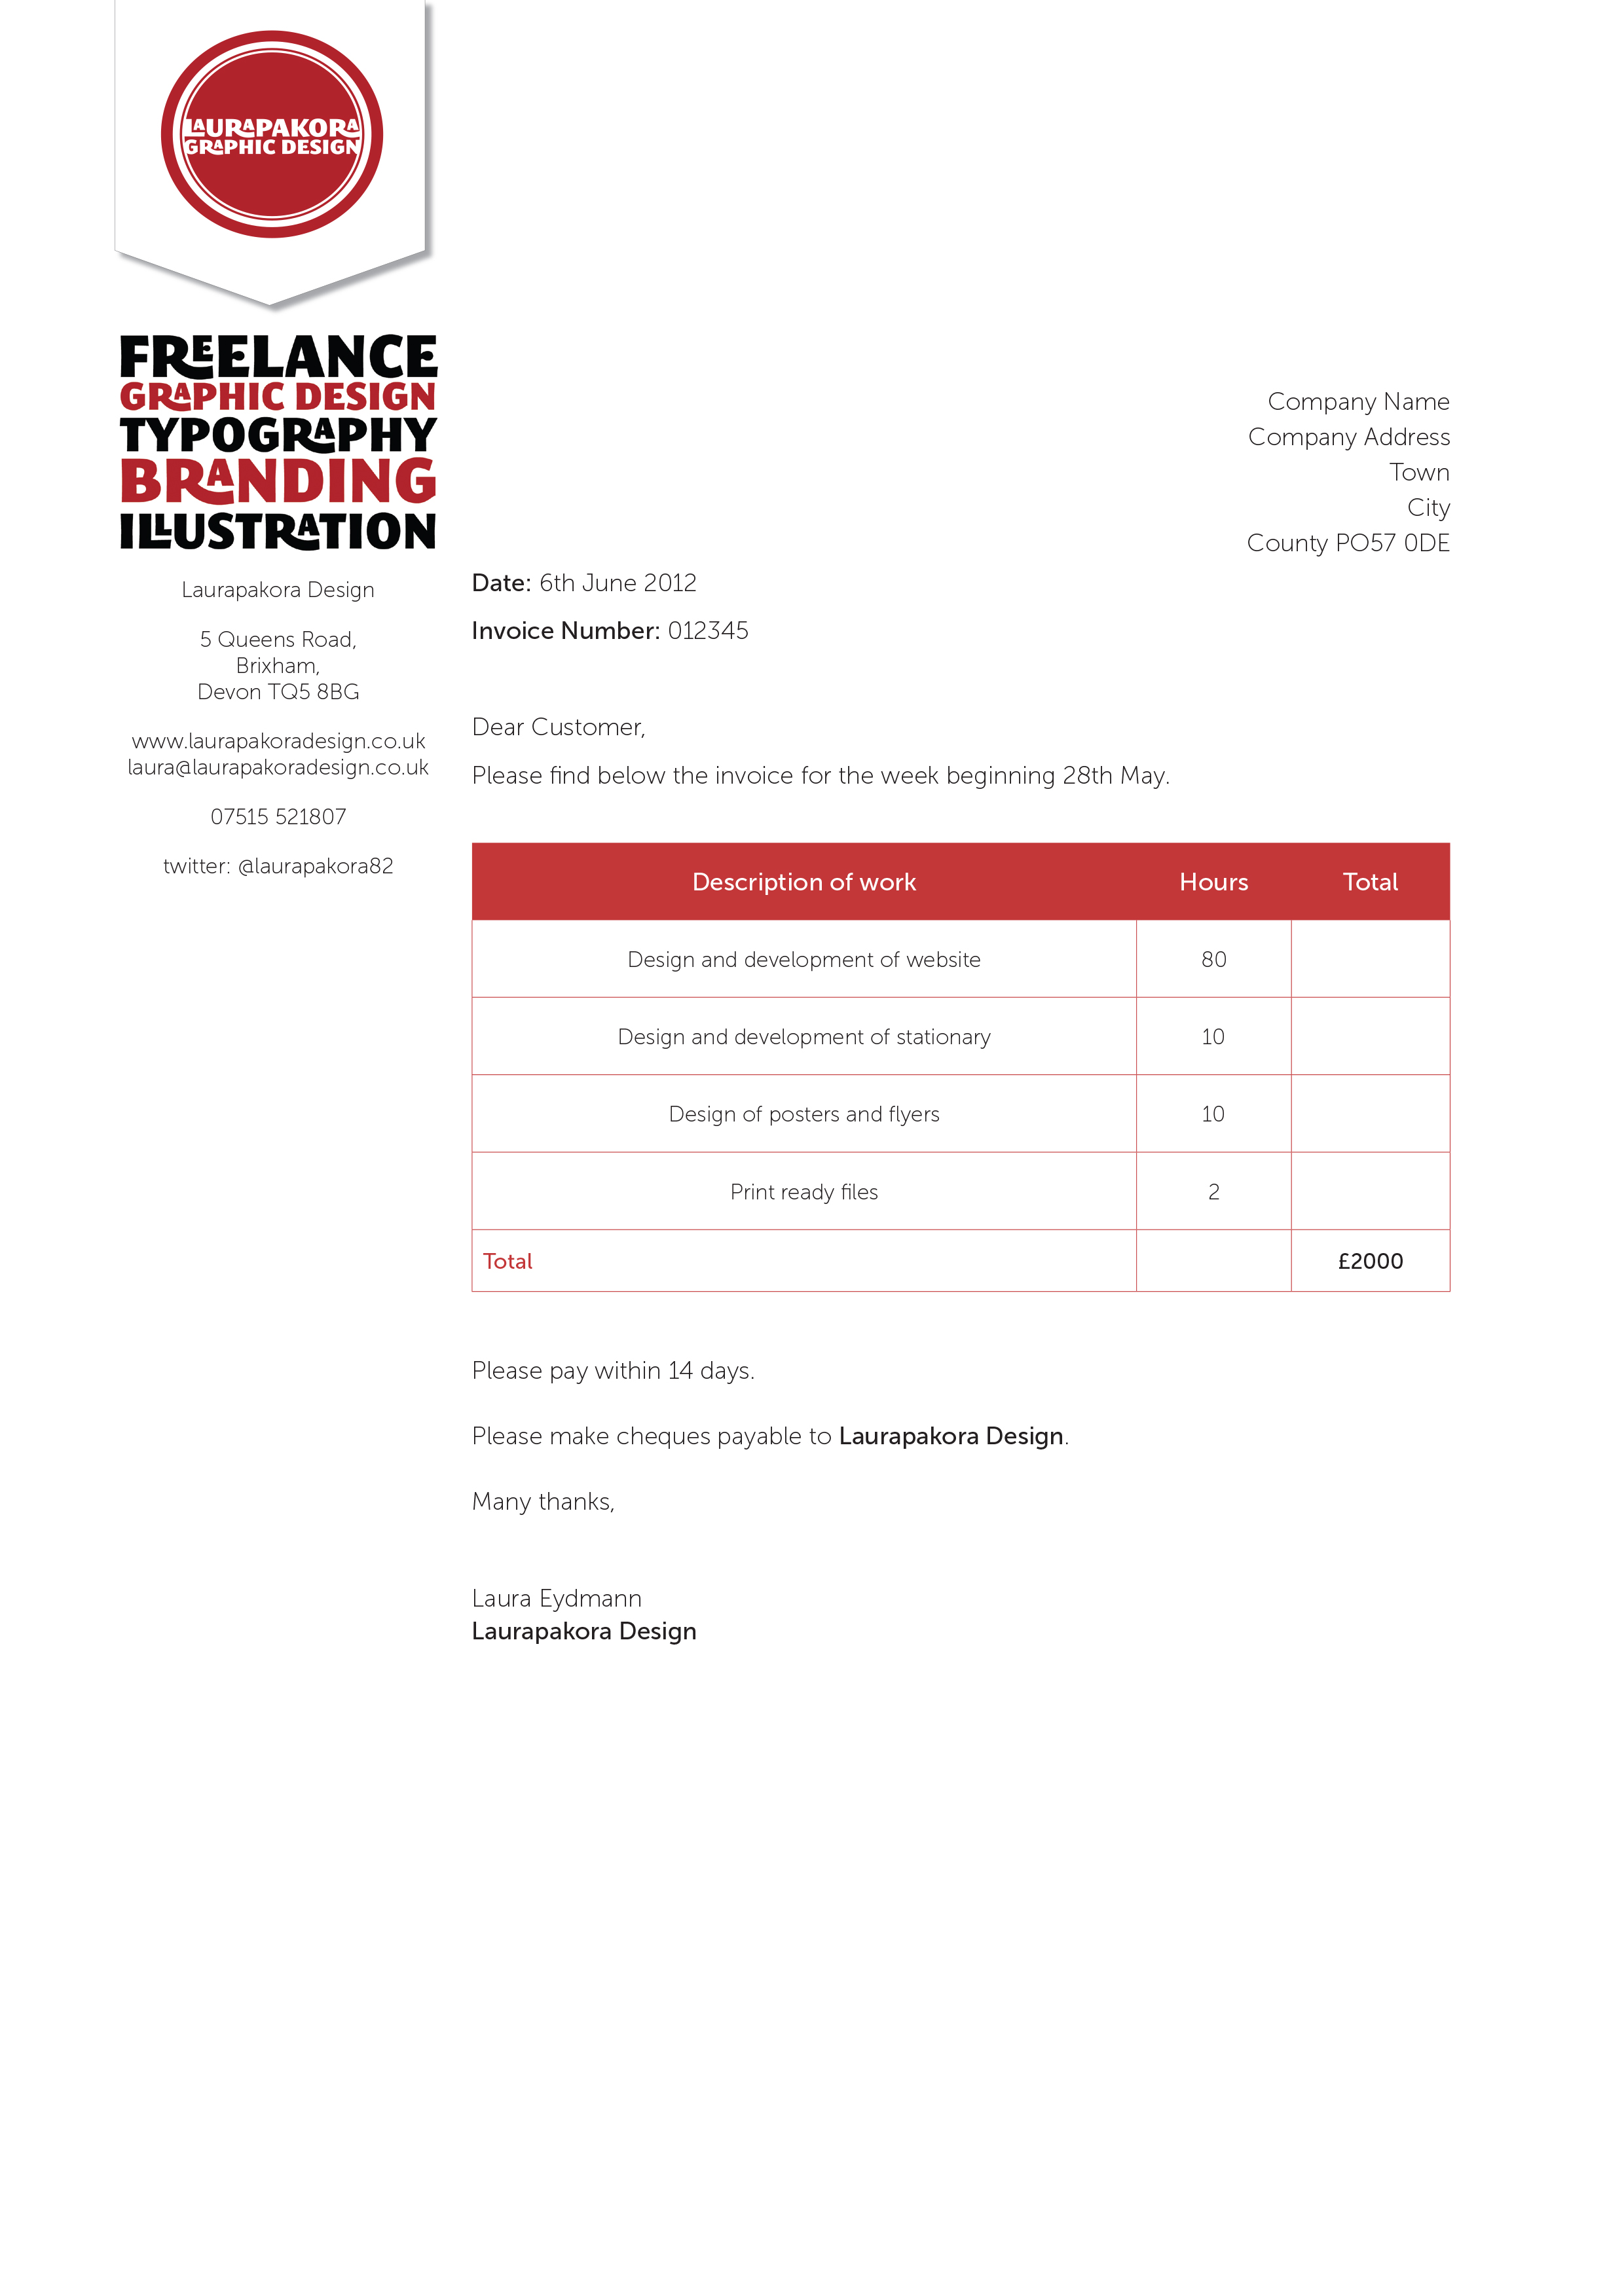 graphic design invoice, Invoice templates